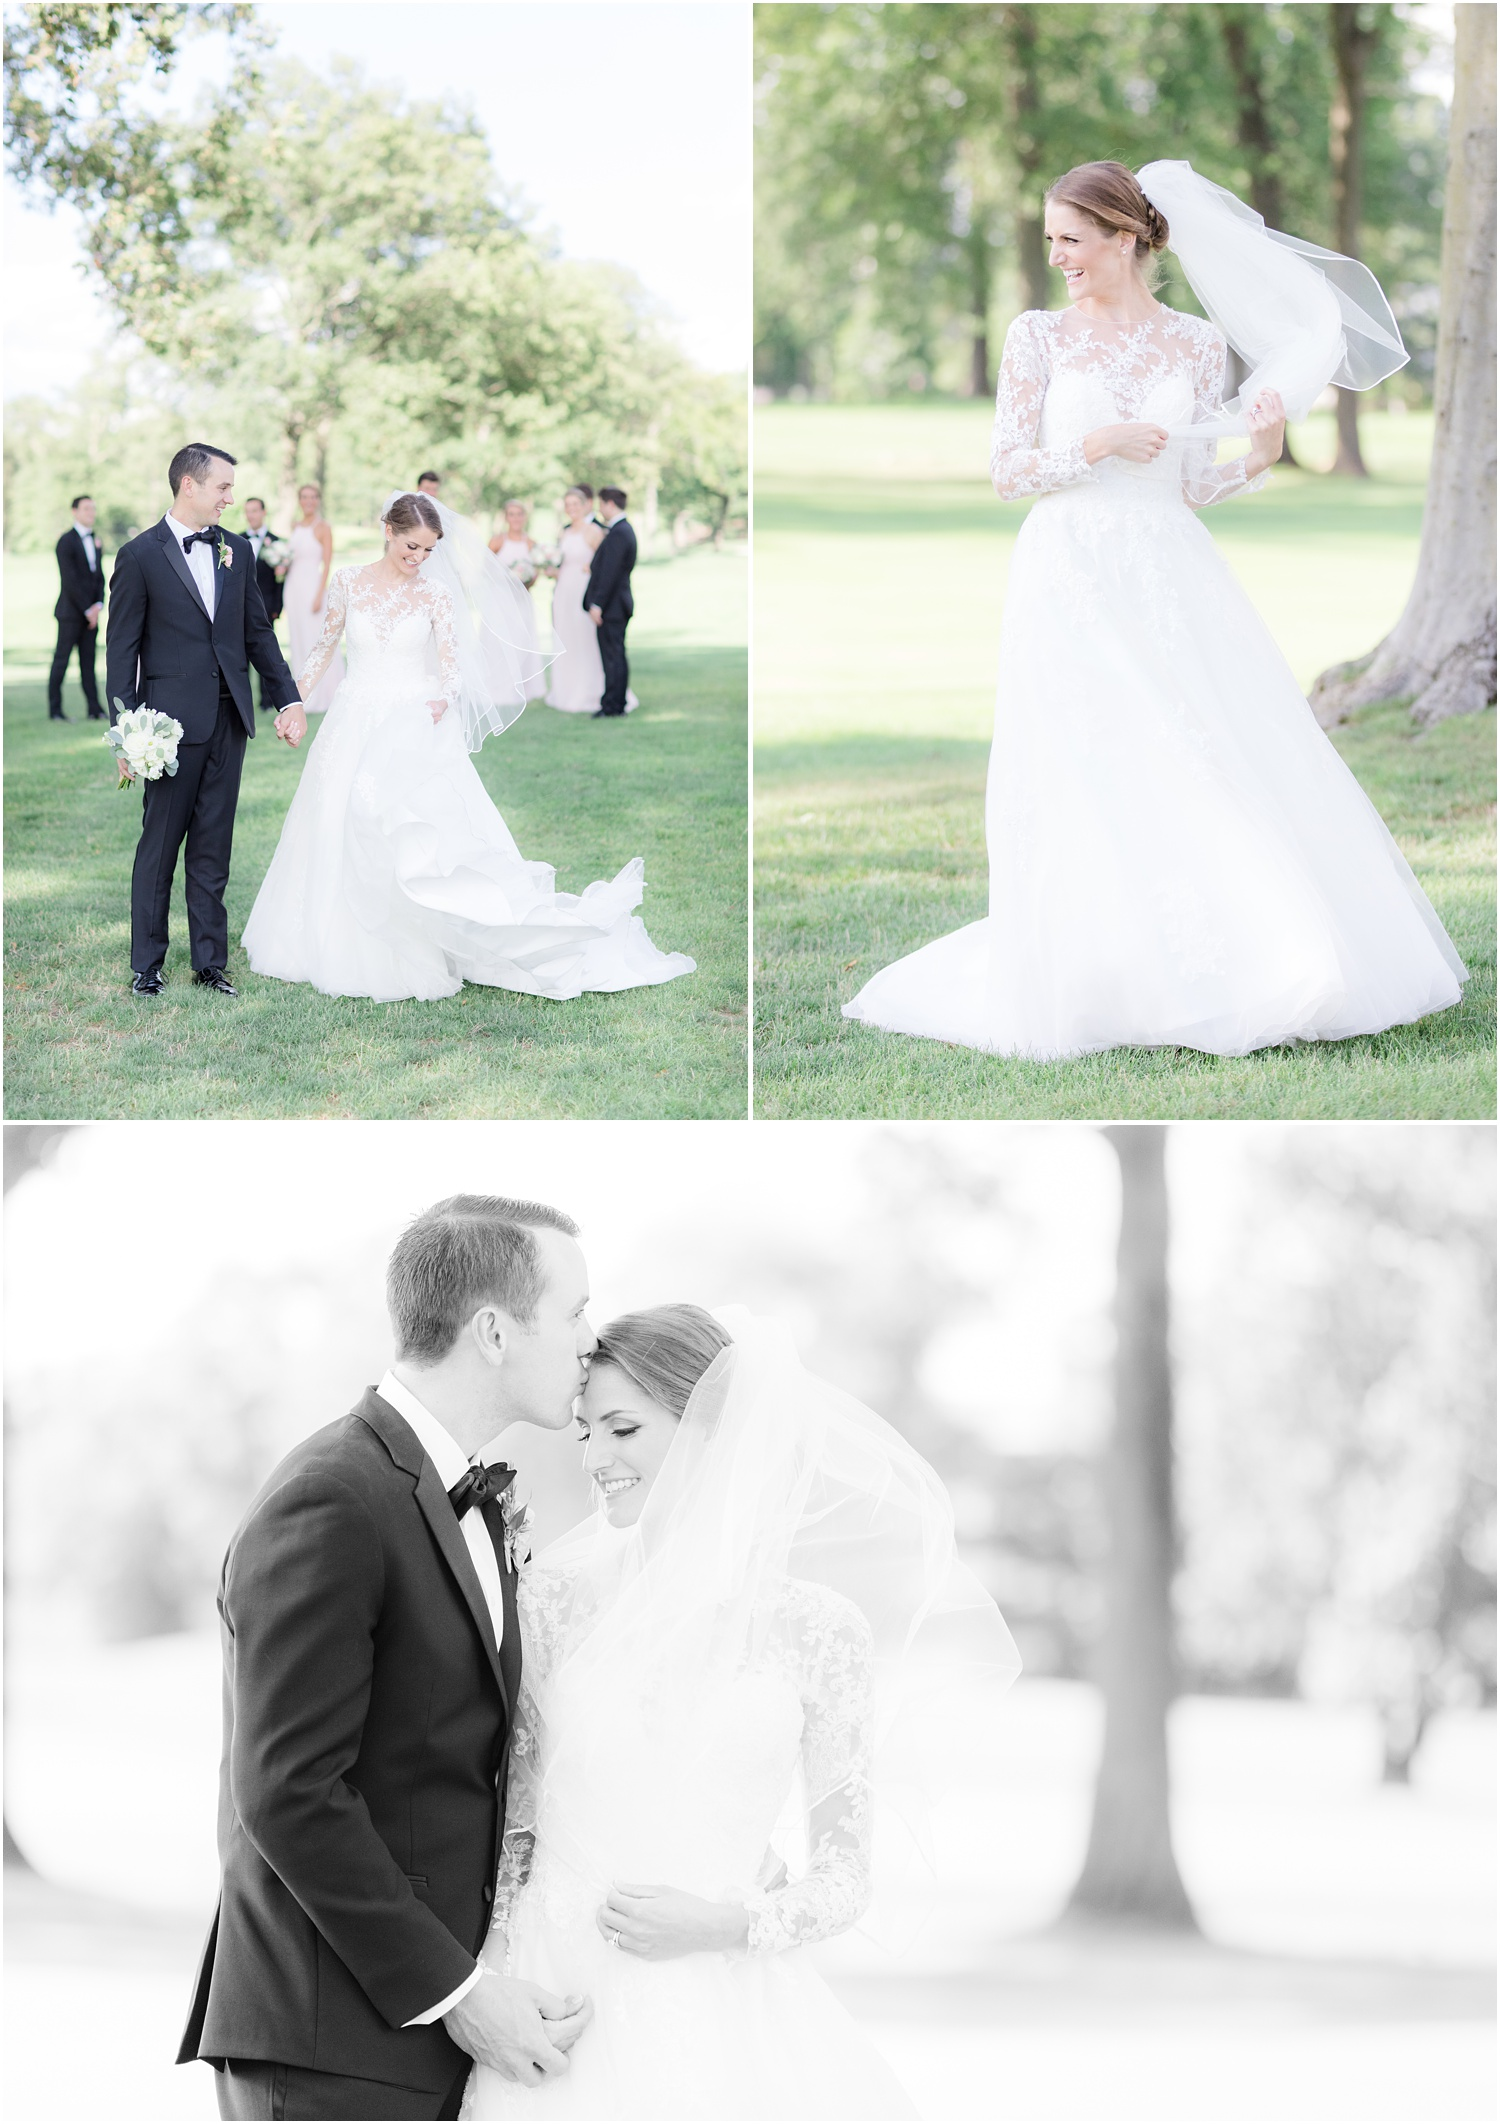 Candid wedding photos at Canoe Brook Country Club